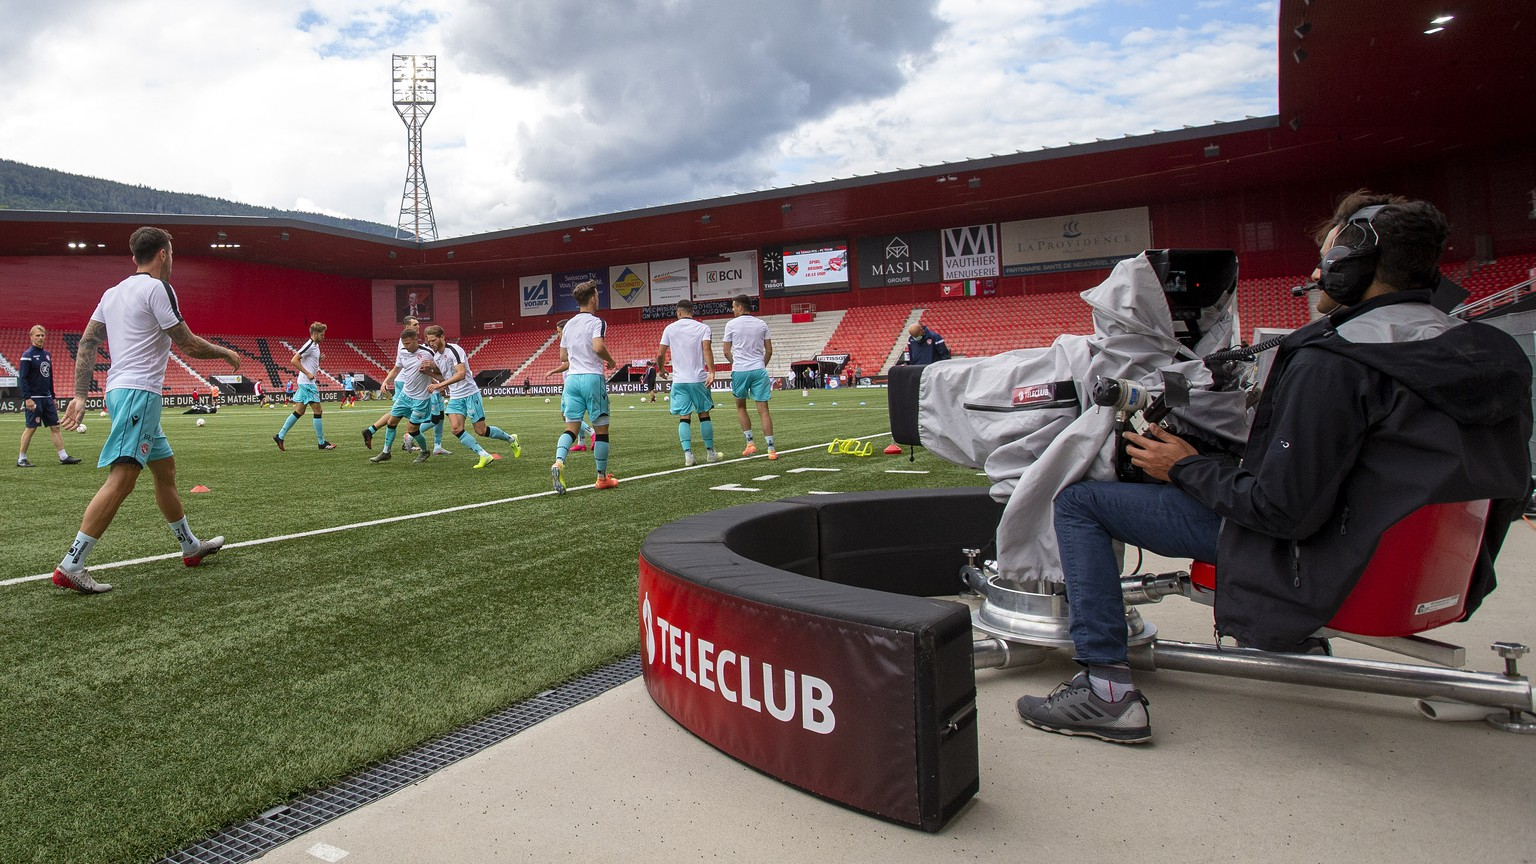 Xamax's players warm up near a camera of Teleclub broadcaster, prior the Super League soccer match of Swiss Championship between Neuchatel Xamax FCS and FC Thun, behind closed doors at the Stade de la Maladiere stadium, in Neuchatel, Switzerland, Saturday, June 20, 2020.All Super League soccer matches of Swiss Championship are played to semi behind closed doors (only 300 persons can be present in the stadium) due to preventive measure against a second wave of the coronavirus COVID-19. (KEYSTONE/Salvatore Di Nolfi)